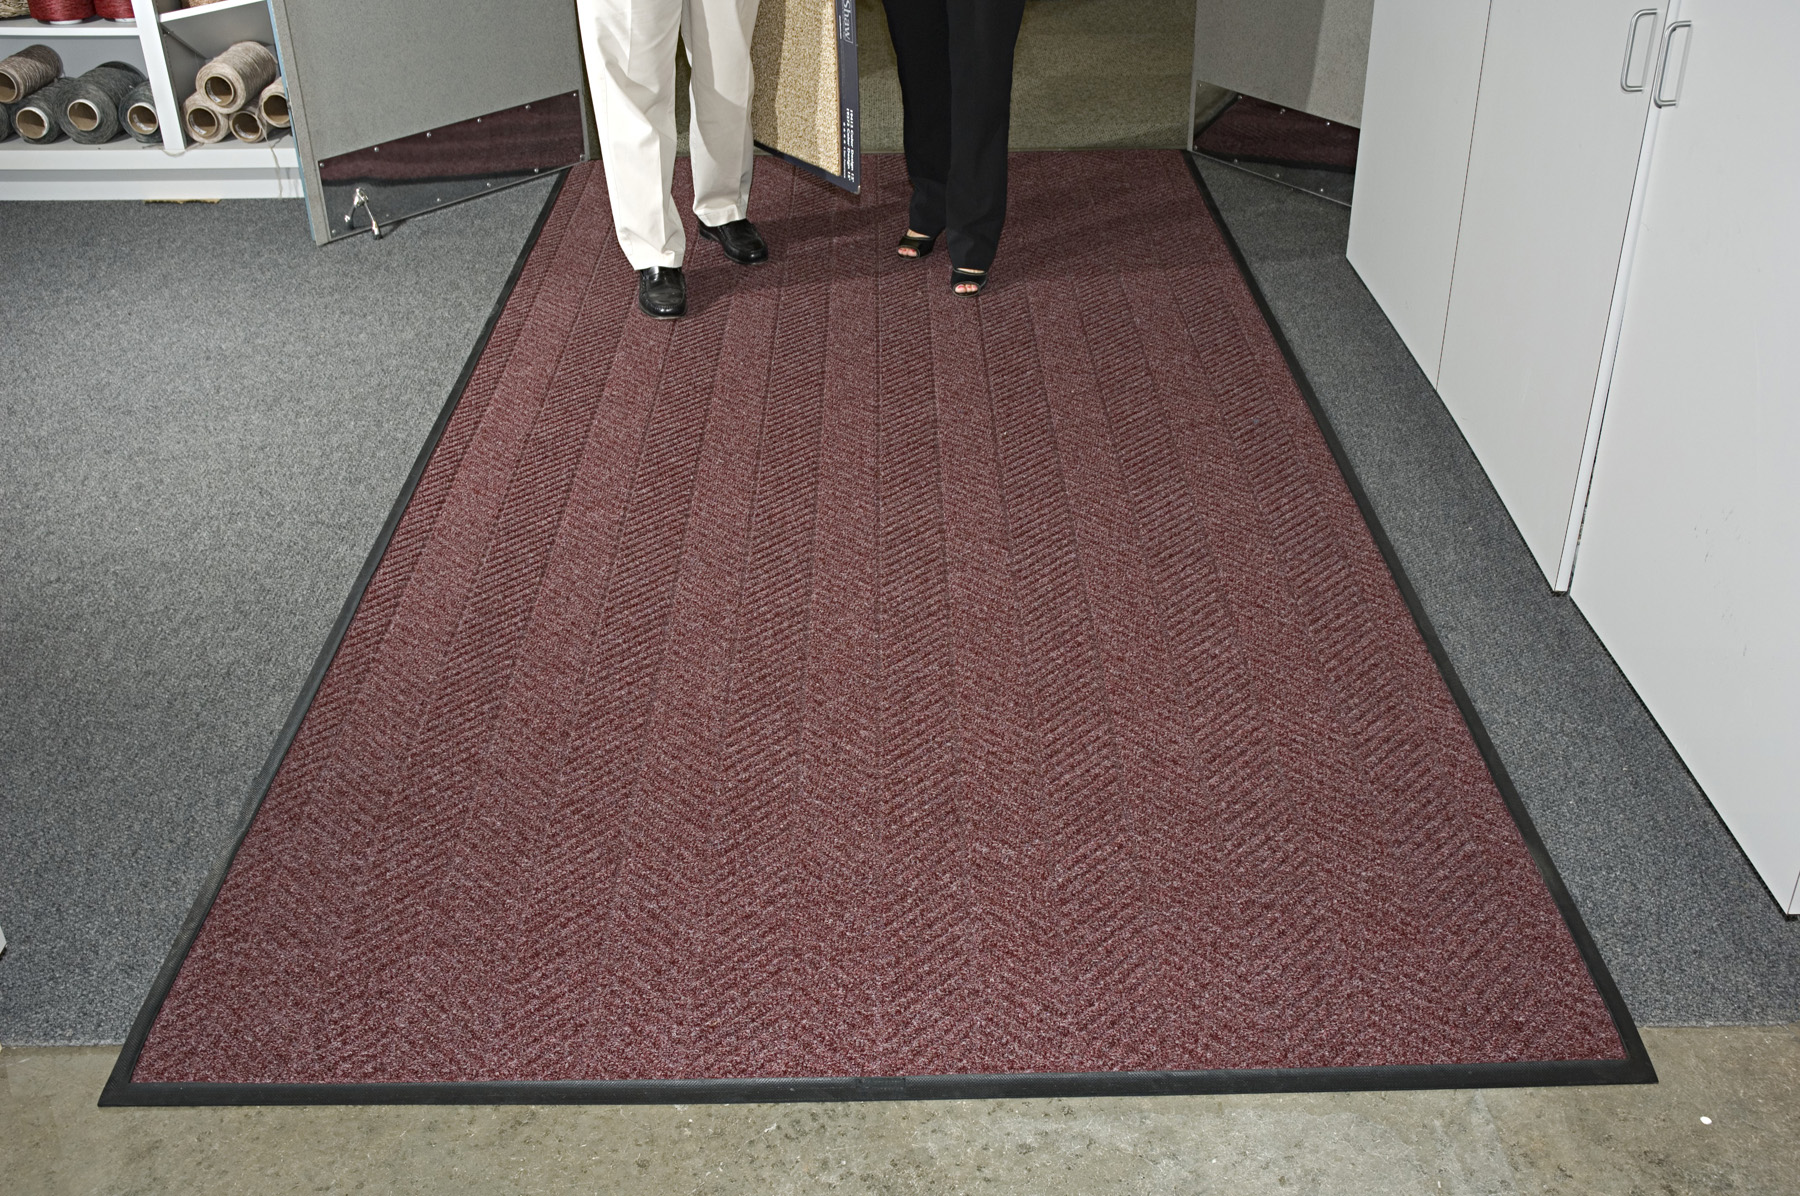 New waterhog eco elite fashion carpet mats from martinson nicholls are durable attractive and - Industrial carpet runners ...